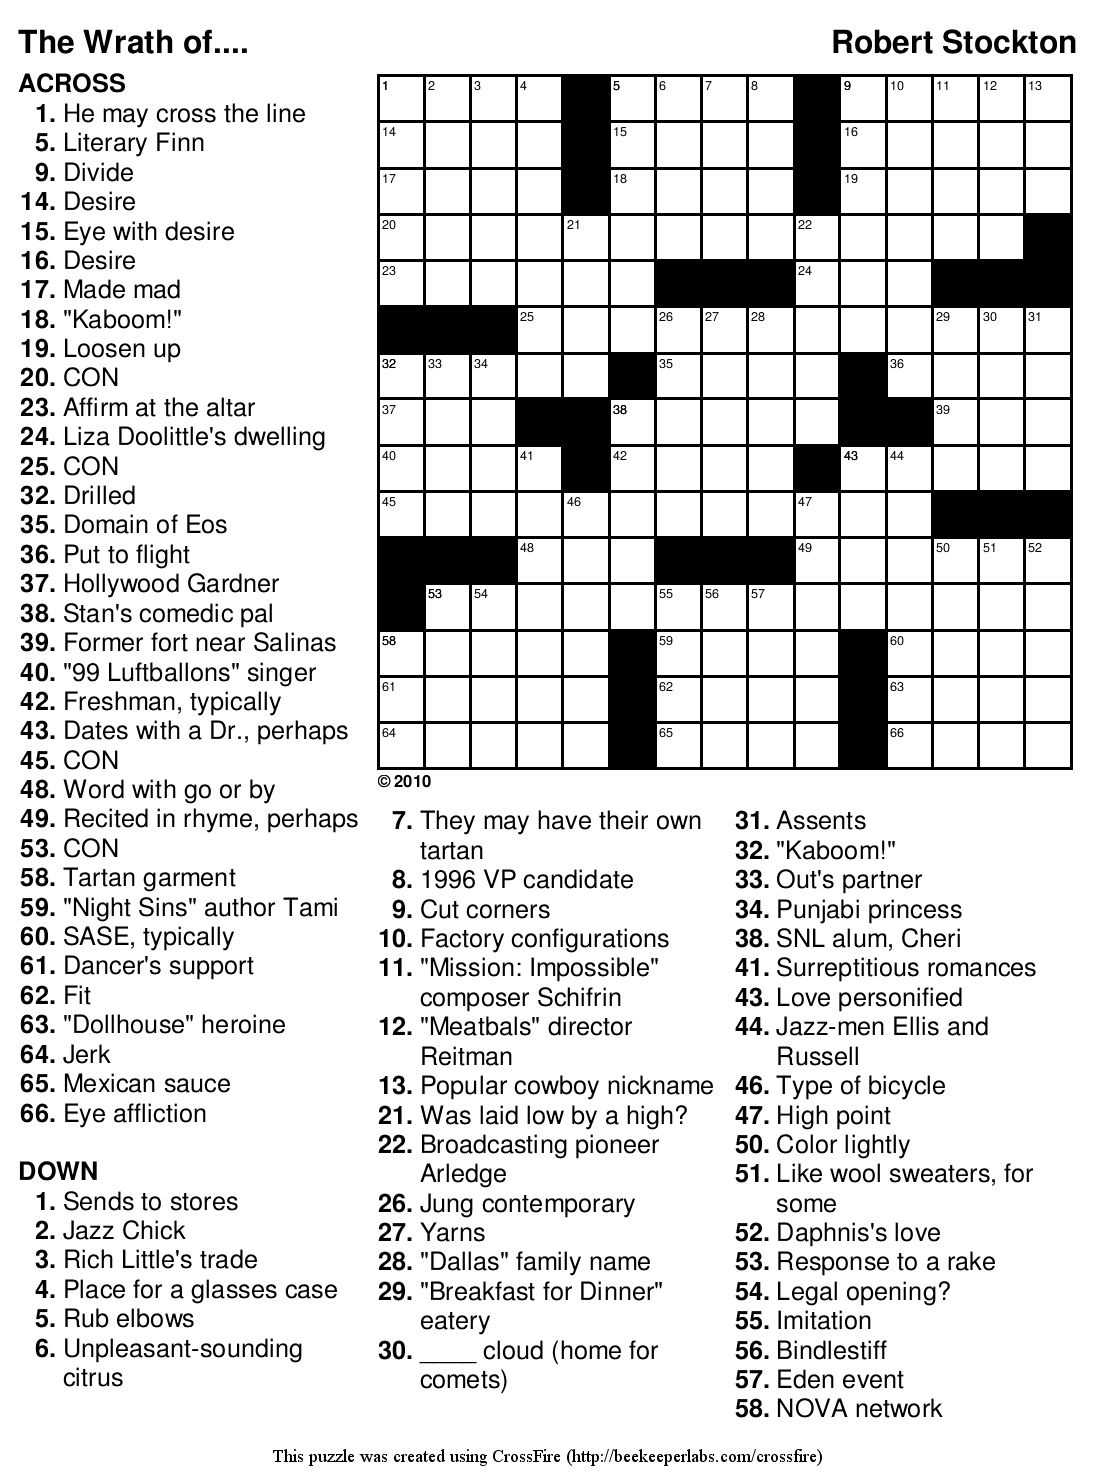 Marvelous Crossword Puzzles Easy Printable Free Org | Chas's Board - Printable Crossword Puzzle Medium Difficulty